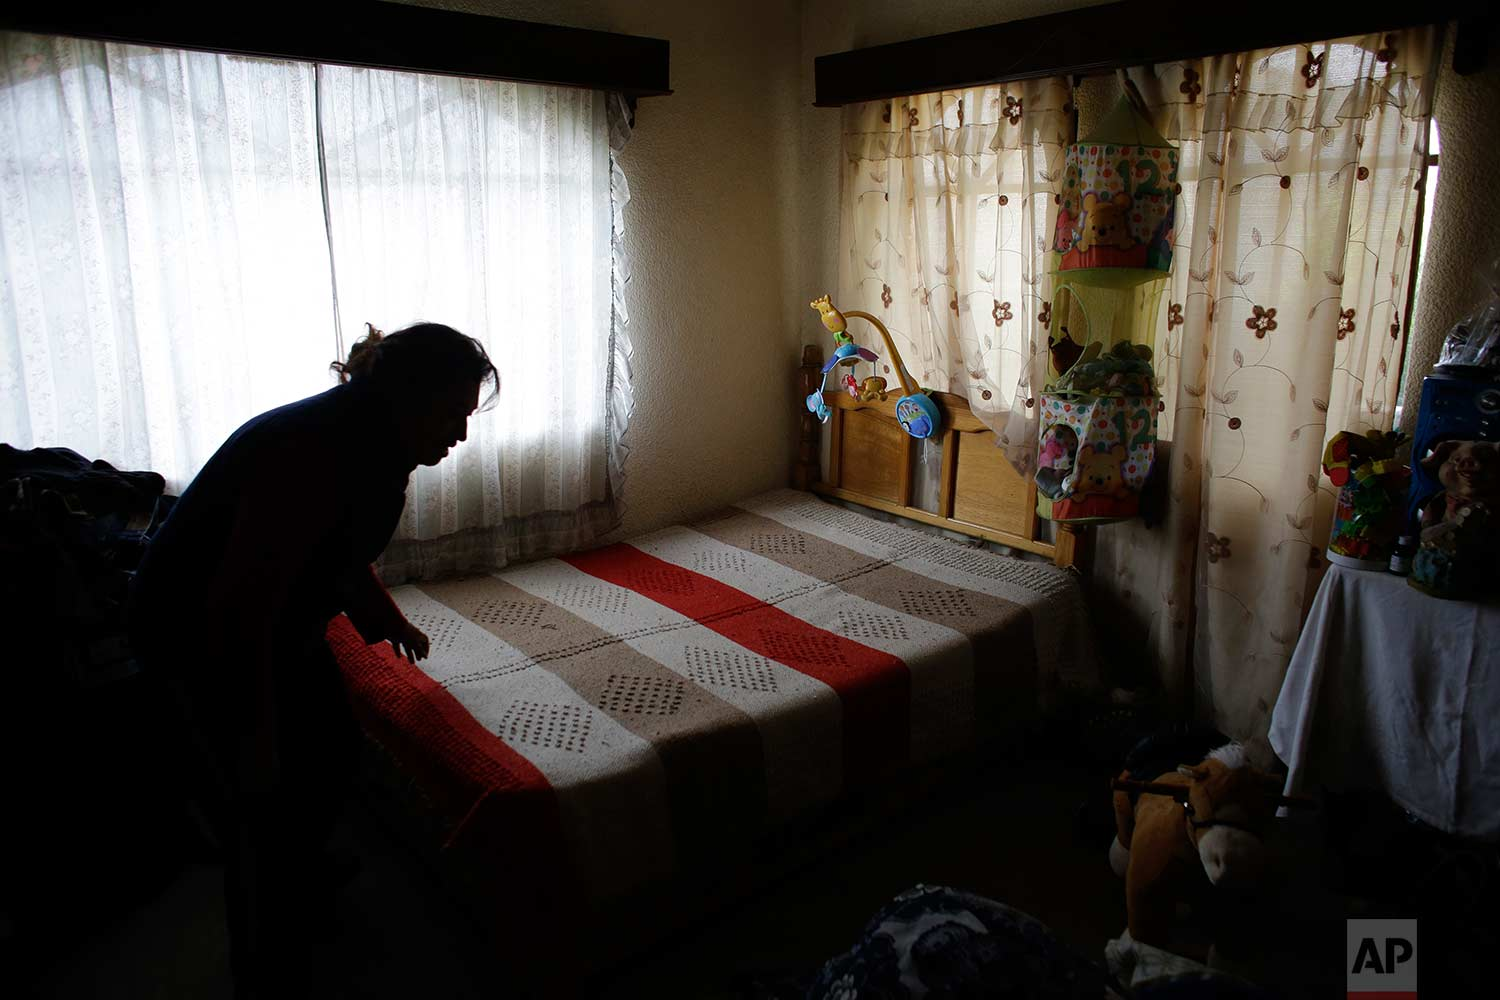 In this Aug. 23, 2017 photo, Juana Pedraza makes the bed in the room her daughter Jessica shared with her one-year-old son in the family's home in Villa Cuauhtemoc, (AP Photo/Rebecca Blackwell)